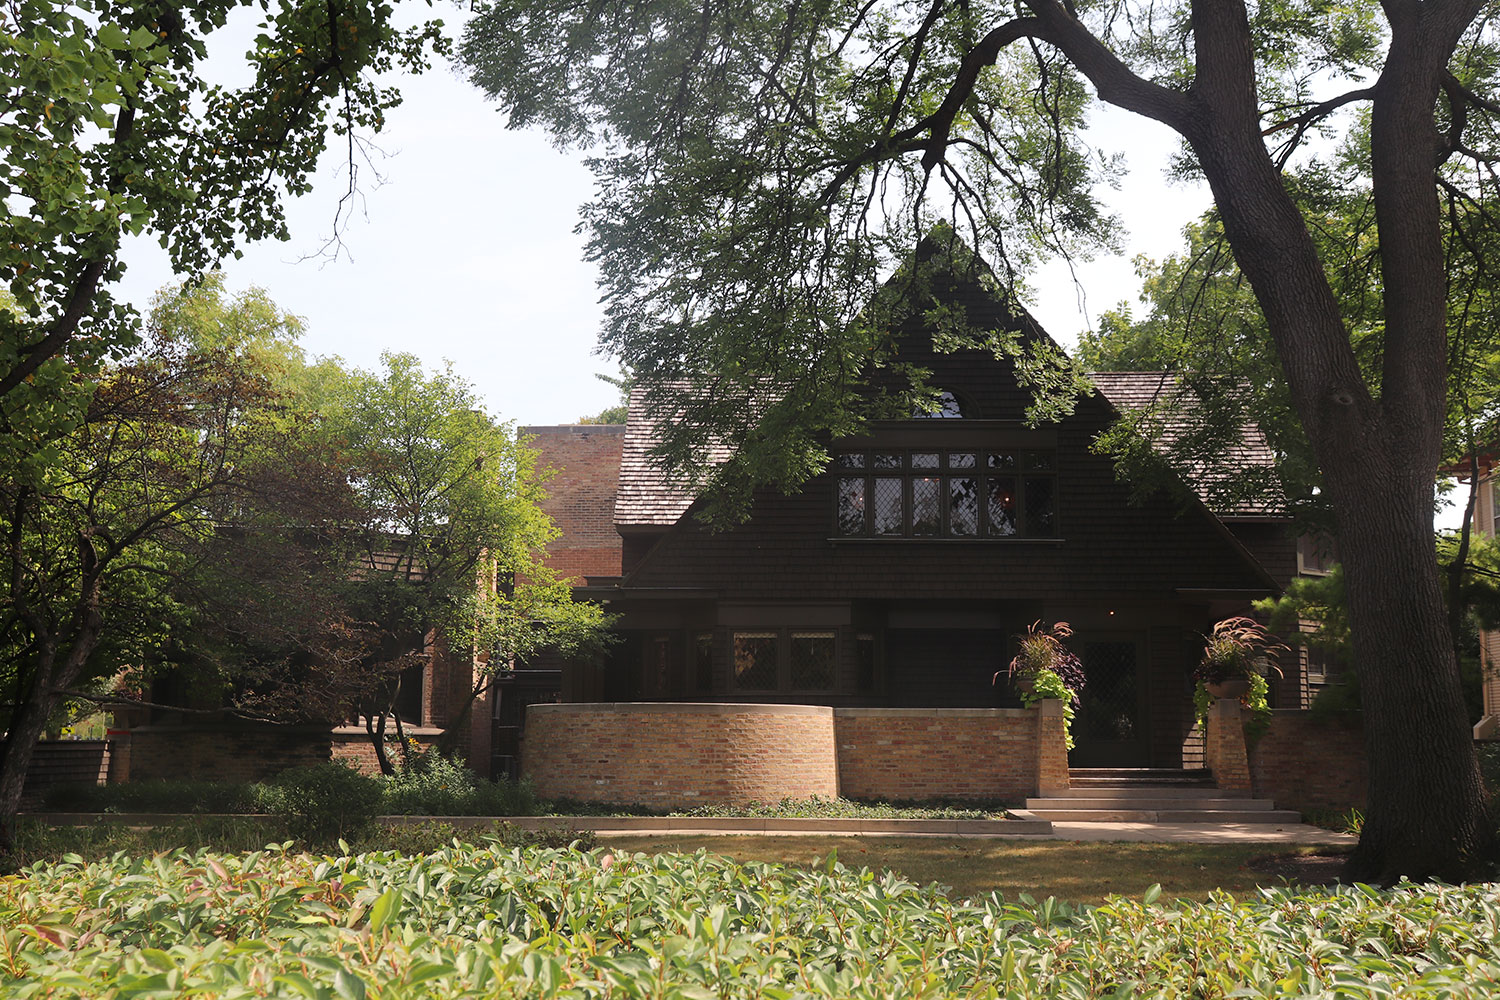 Frank Lloyd Wright House and Studio, Oak Park, Illinois